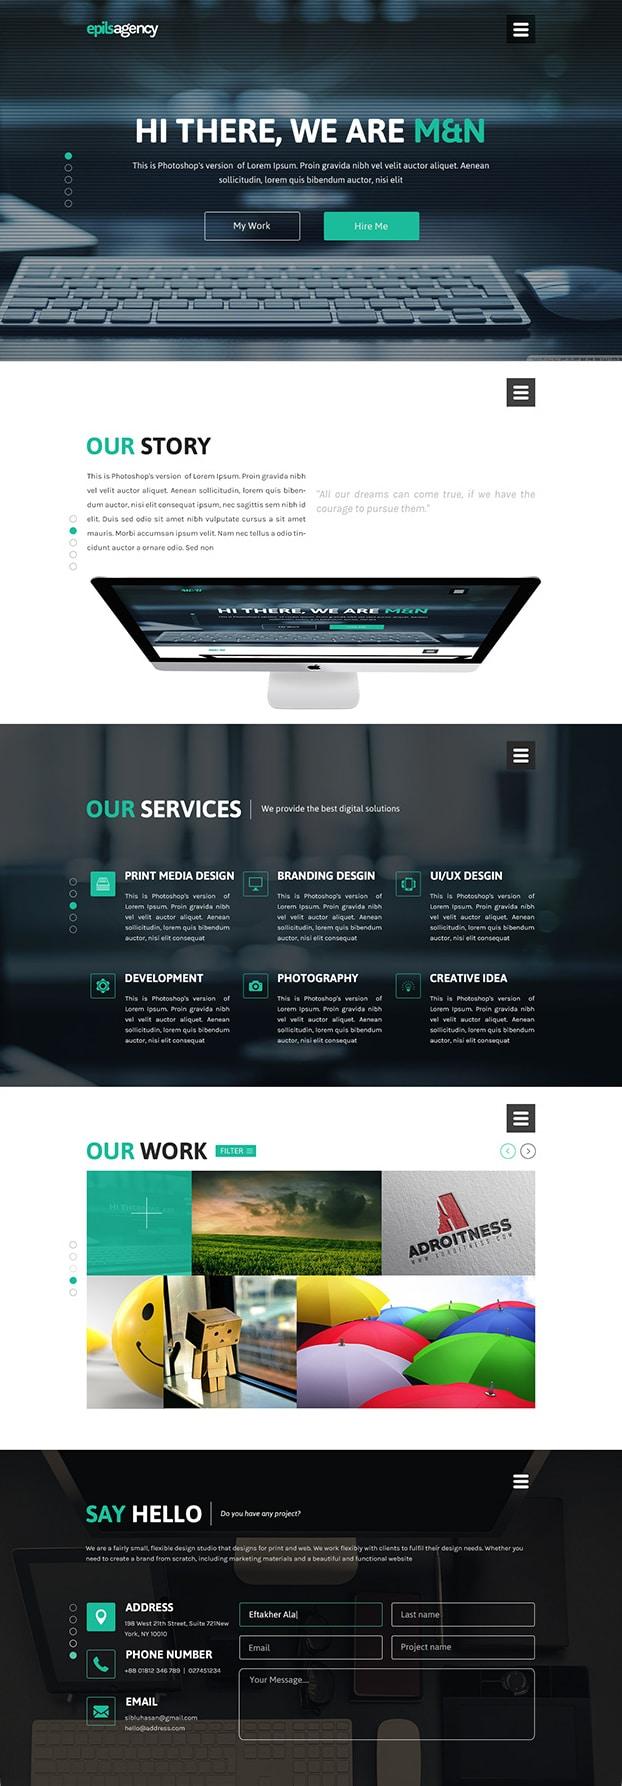 Free Creative Agency Web Design PSD